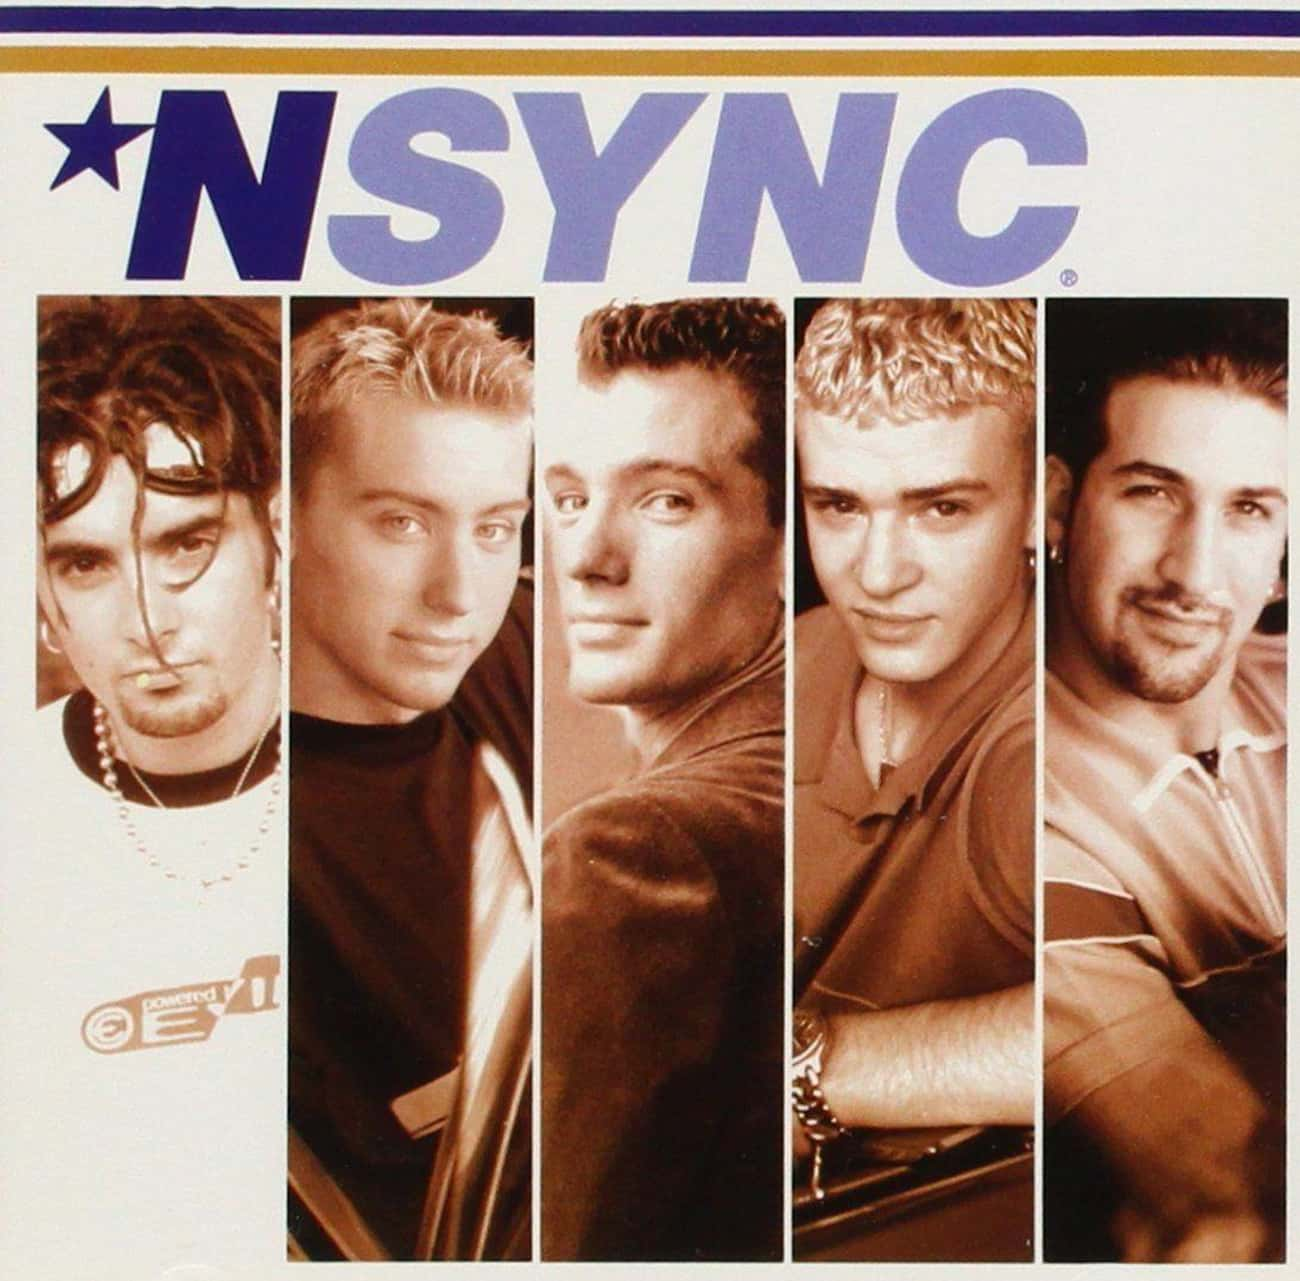 *NSYNC Created Three Rock-Solid Pop Albums While Backstreet Boys Churned Out Filler